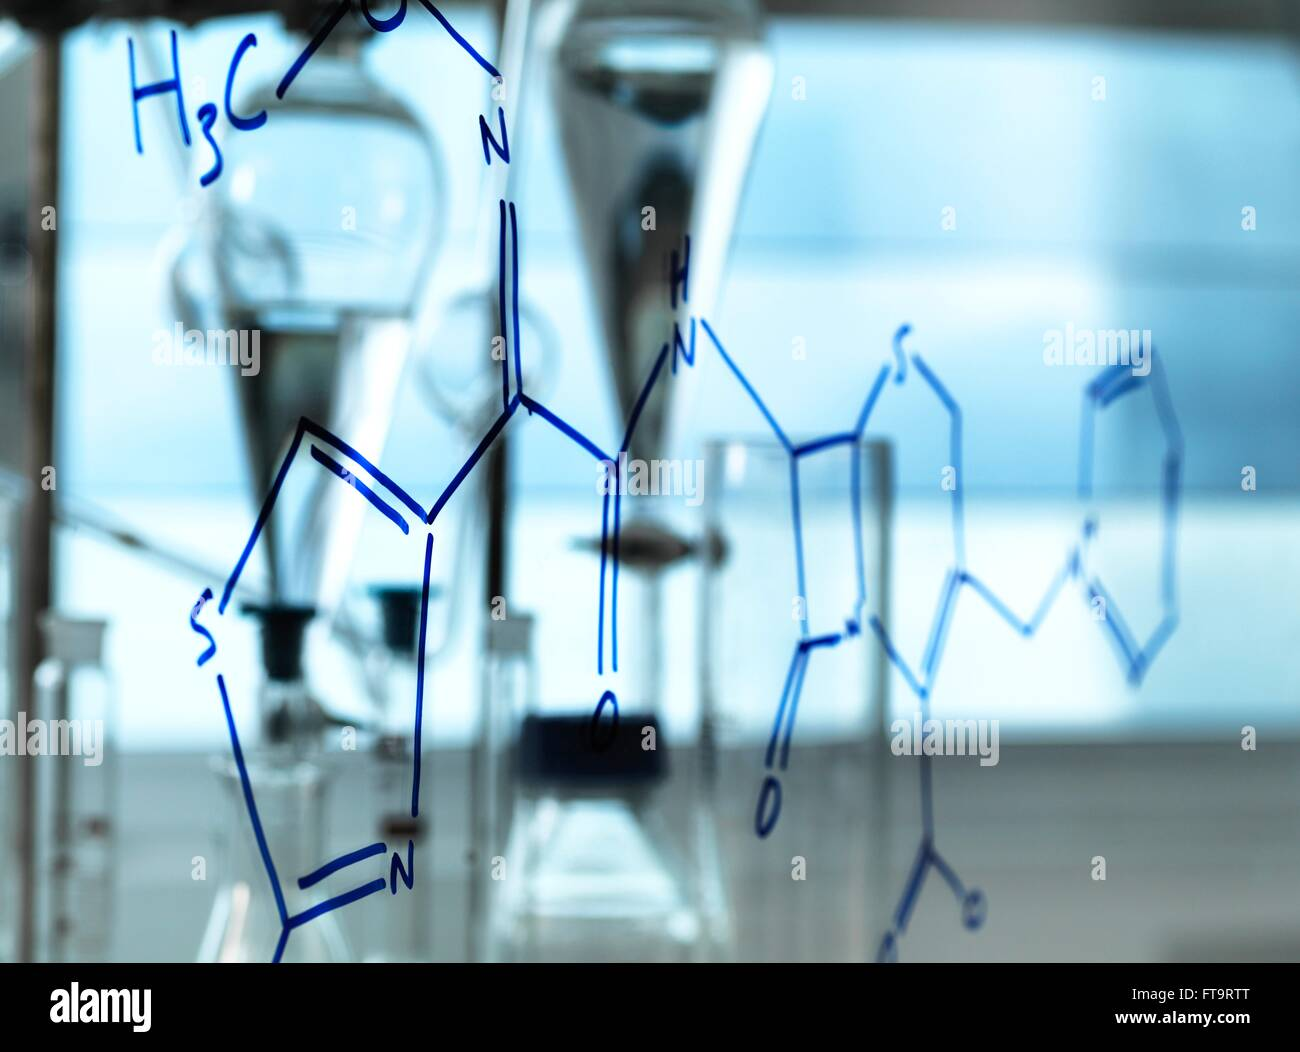 PROPERTY RELEASED. Chemical formula of drug drawn on a screen in a laboratory. - Stock Image